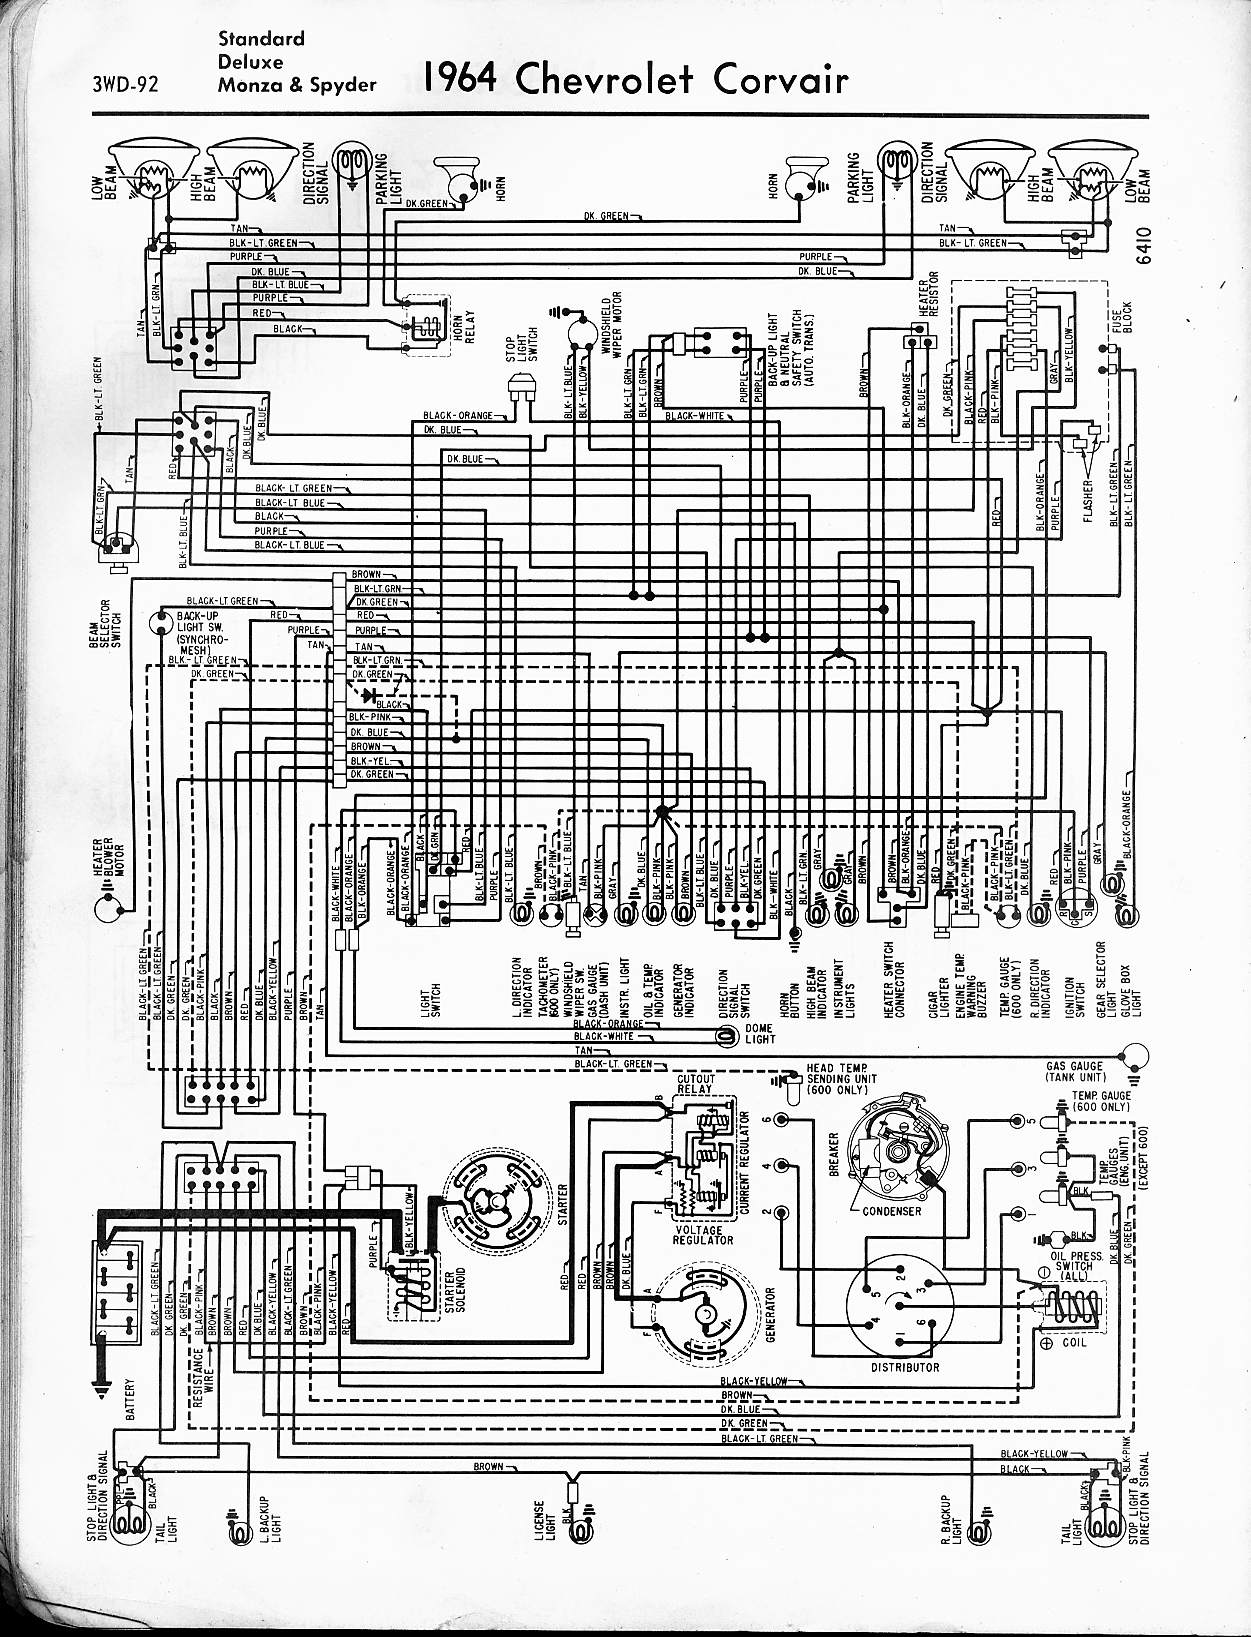 64 Corvette Ignition Wiring Diagrams 57 65 Chevy Wiring Diagrams